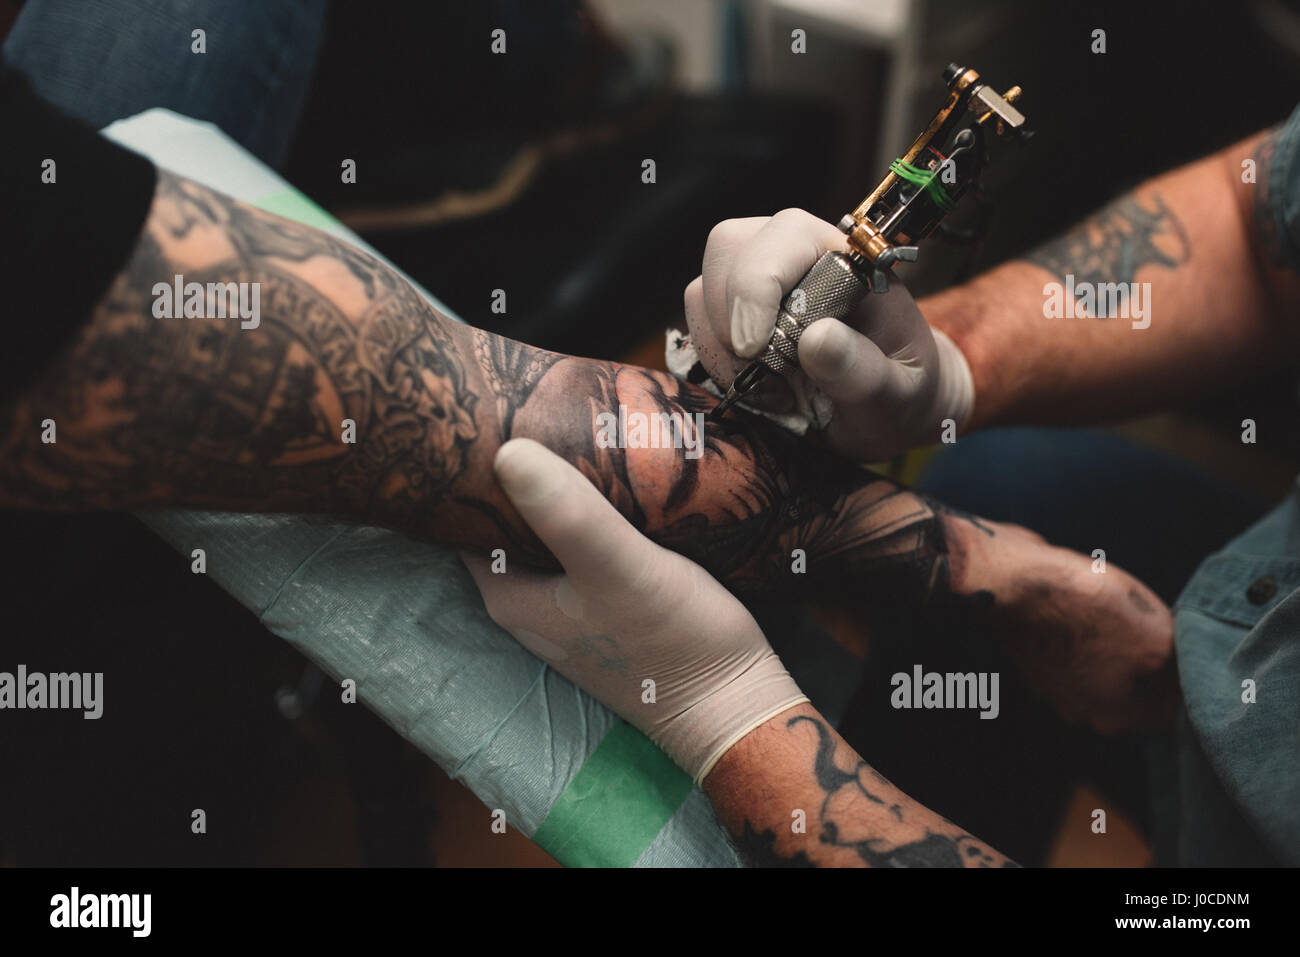 Tattooist tattooing young man's arm, close-up - Stock Image